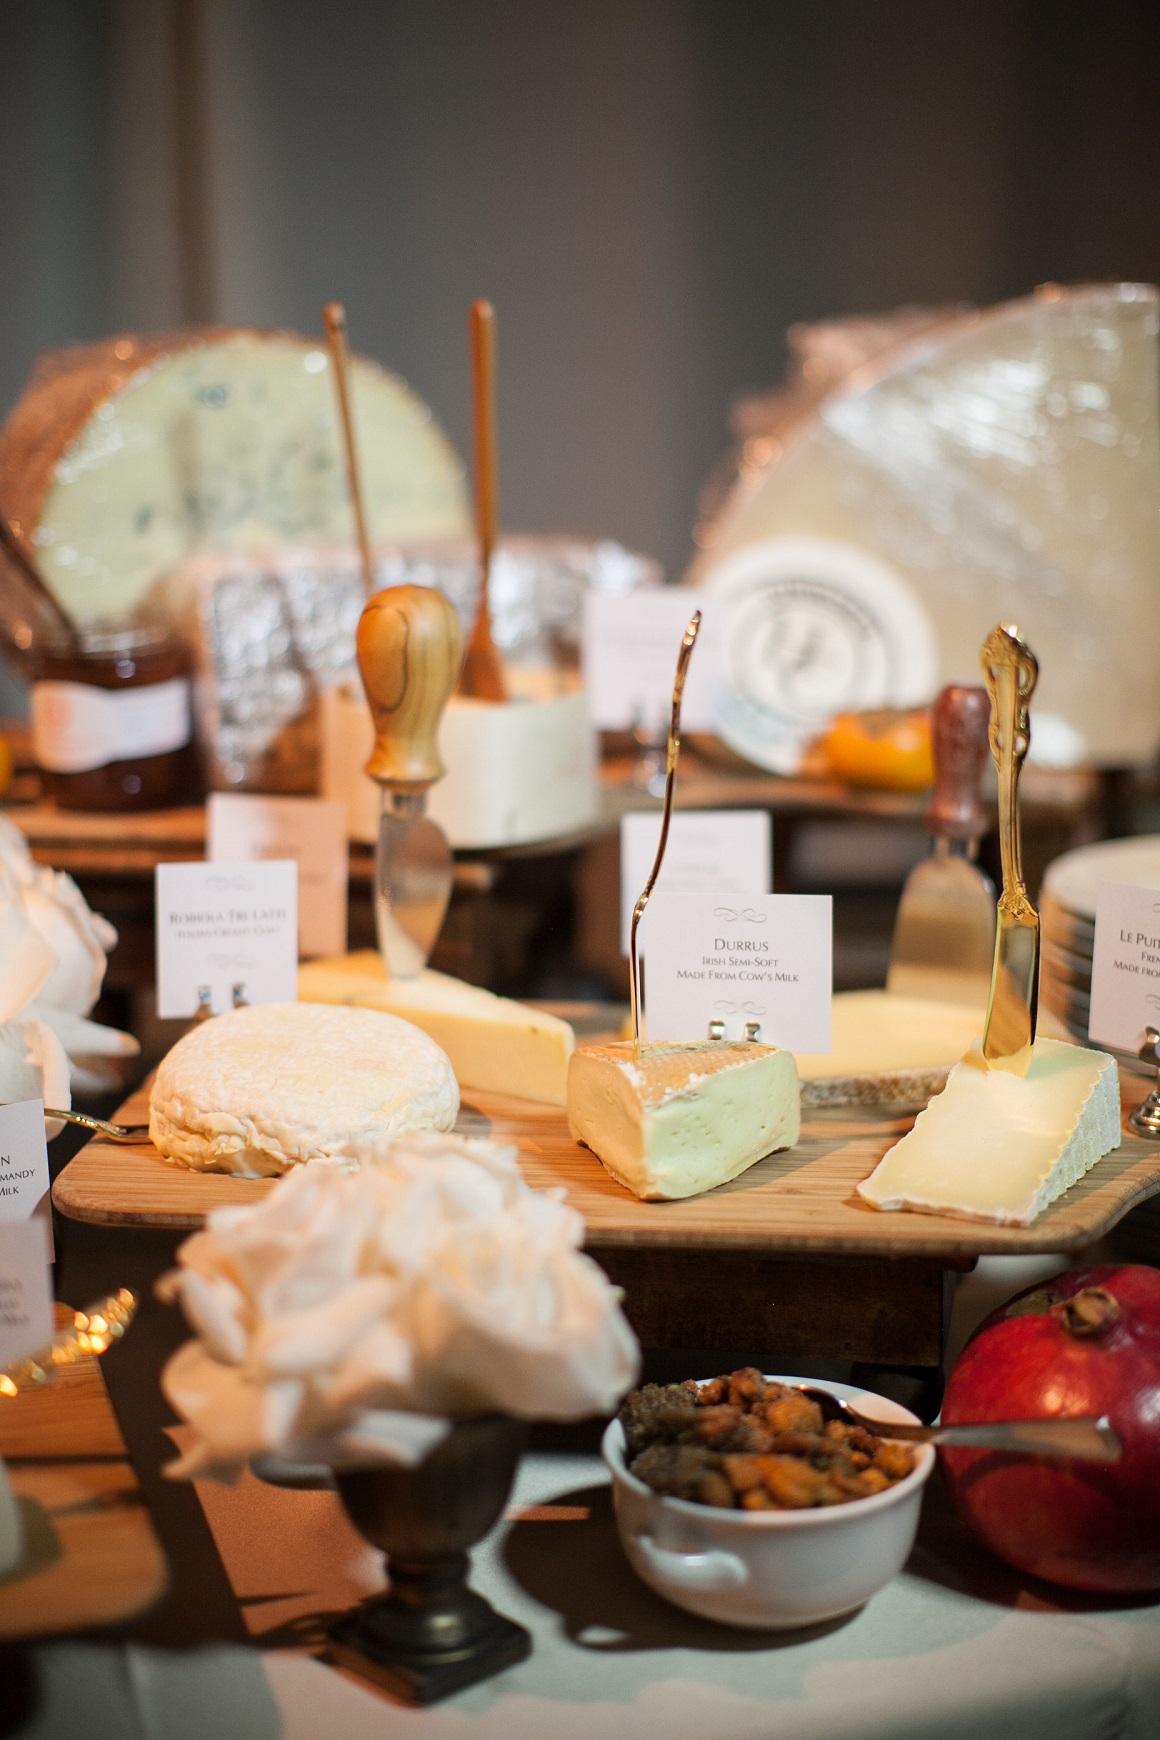 Event Details, Event, Holiday Event, Cheese plate, Food